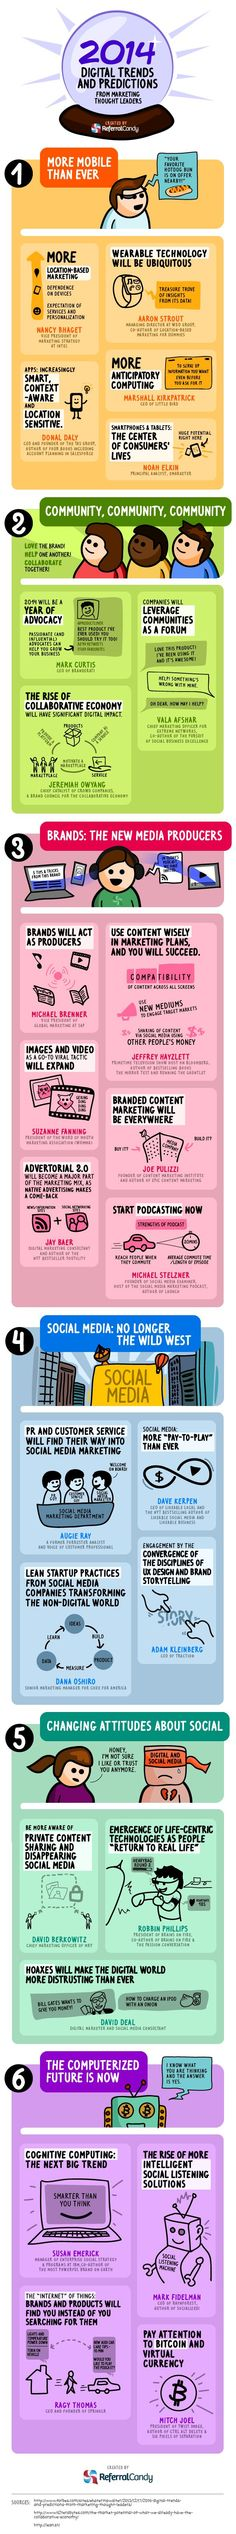 2014 Digital Trends And Predictions from Marketing thought Leaders #infographic #smm #marketing #in #infografía